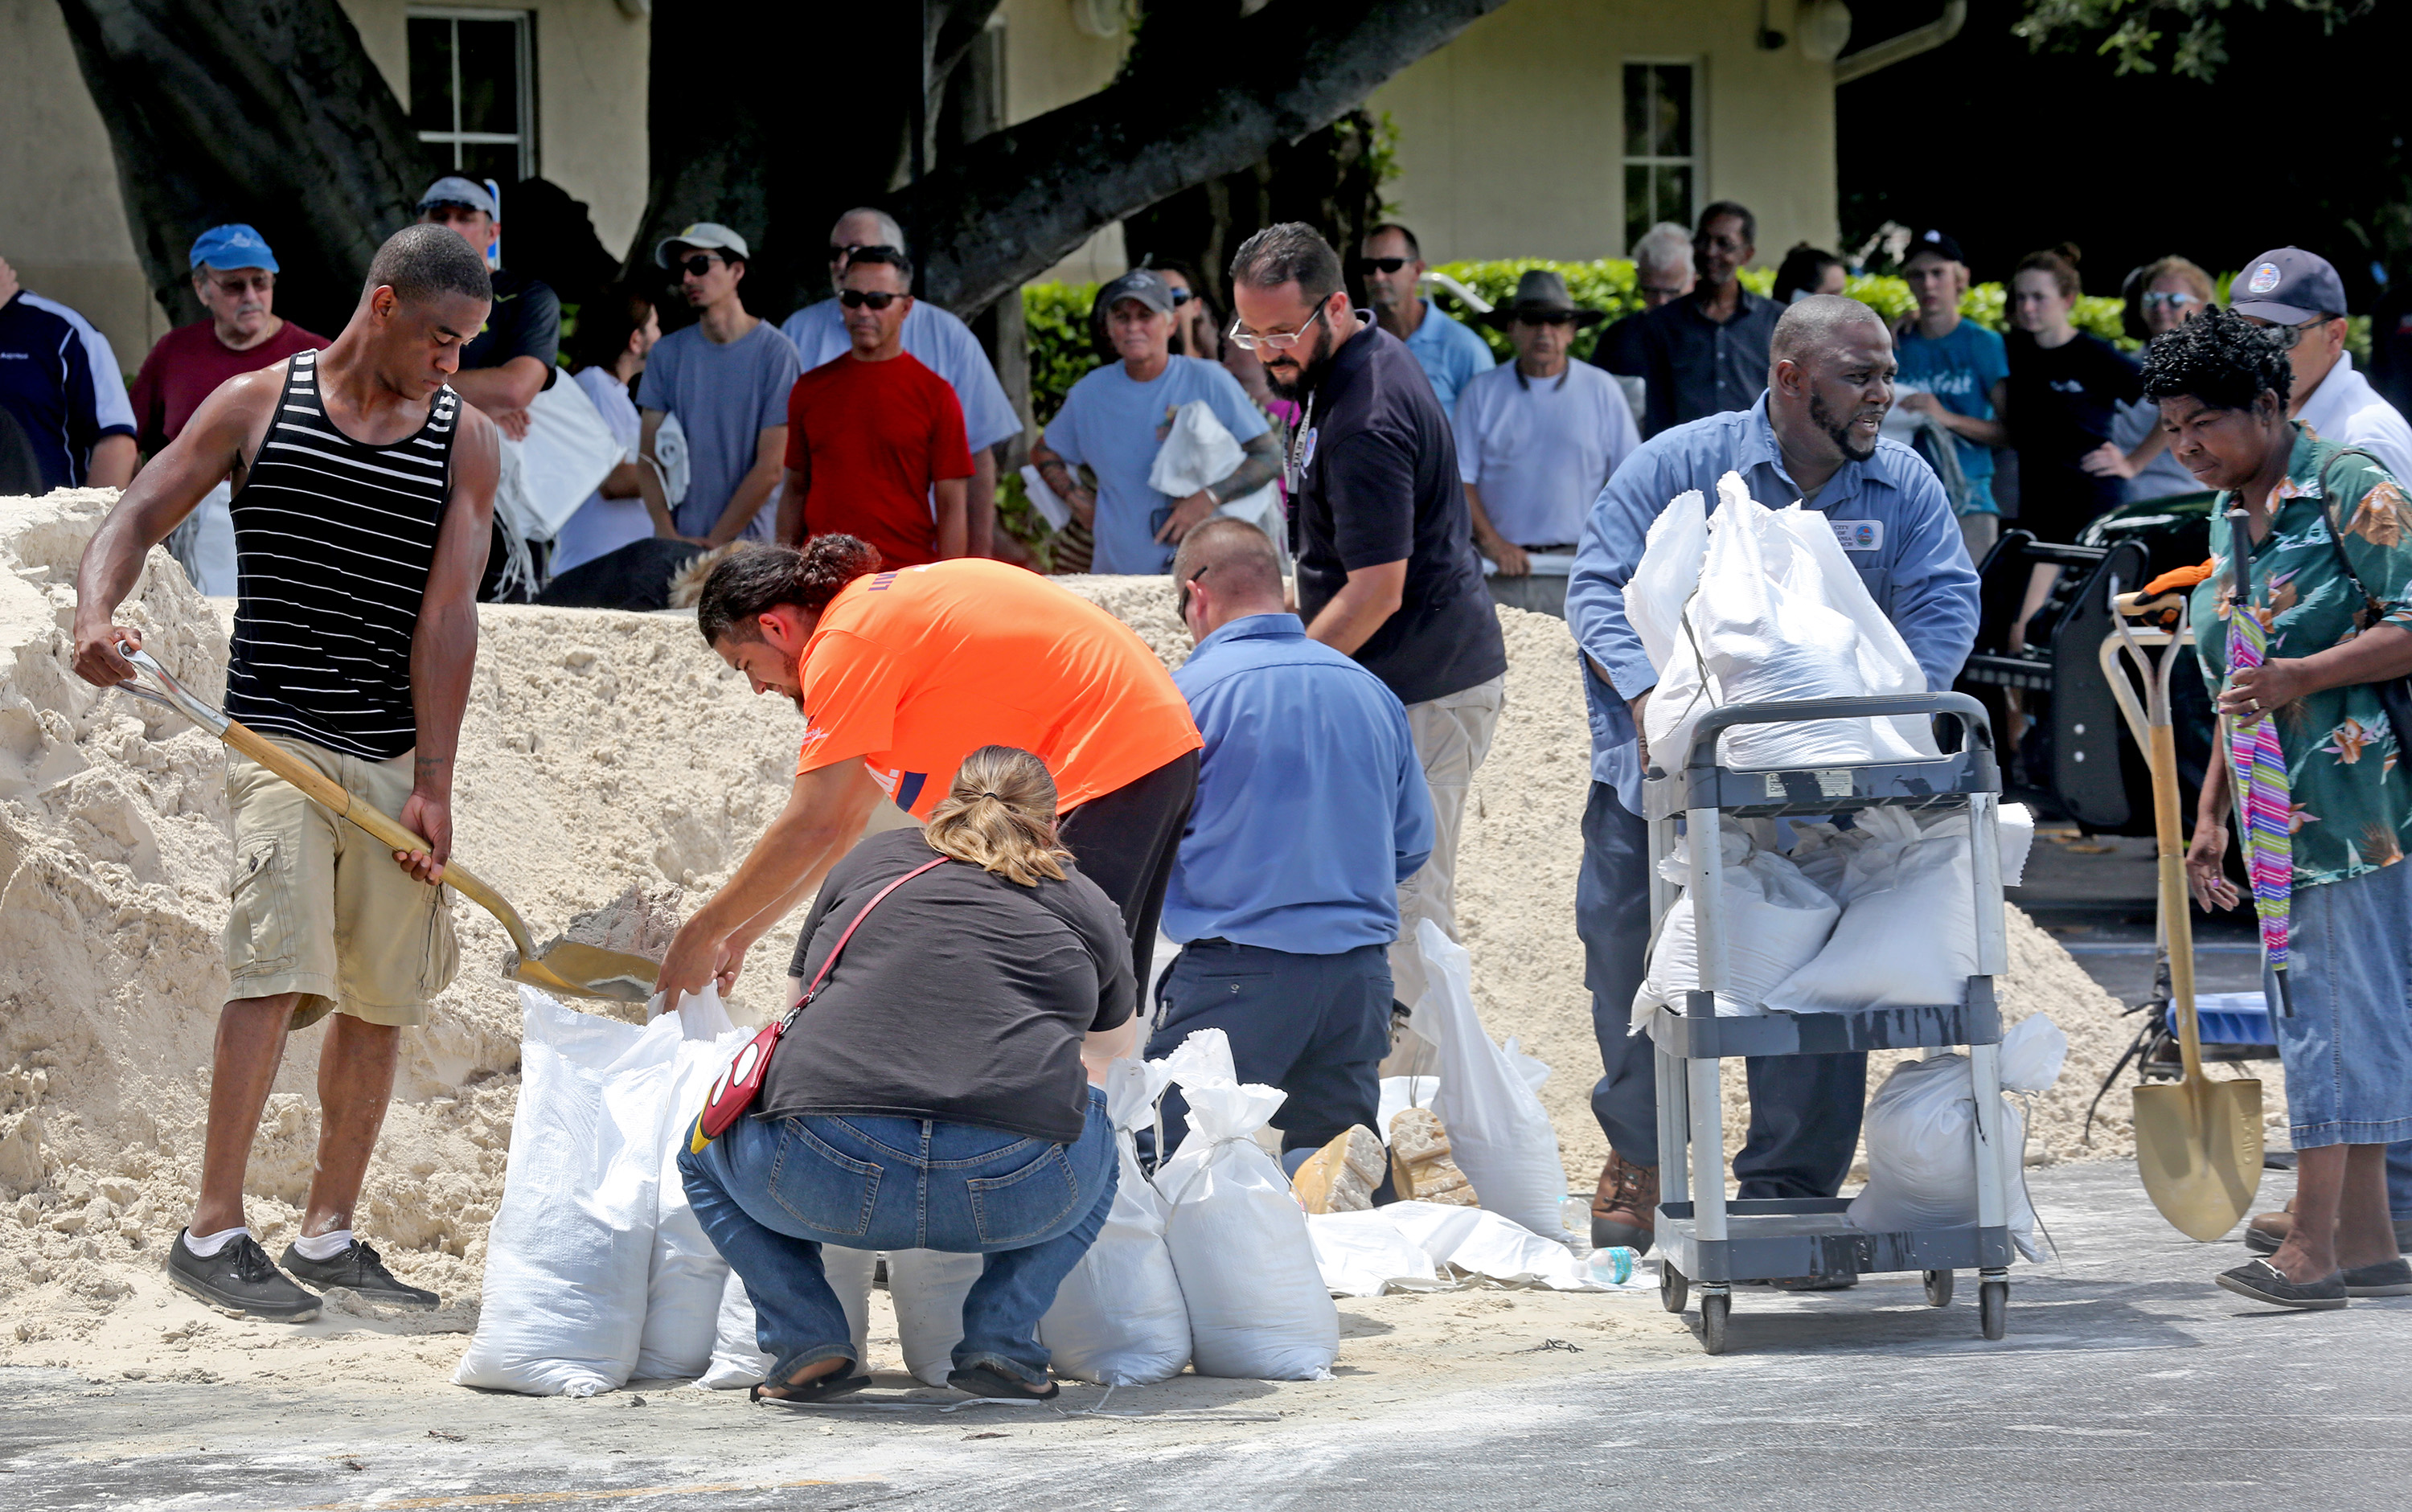 Residents fill sandbags in Dania Beach, Florida, on Sept. 7 in preparation for Hurricane Irma. Photo by Mike Stocker/South Florida Sun-Sentinel/TNS via Getty Images